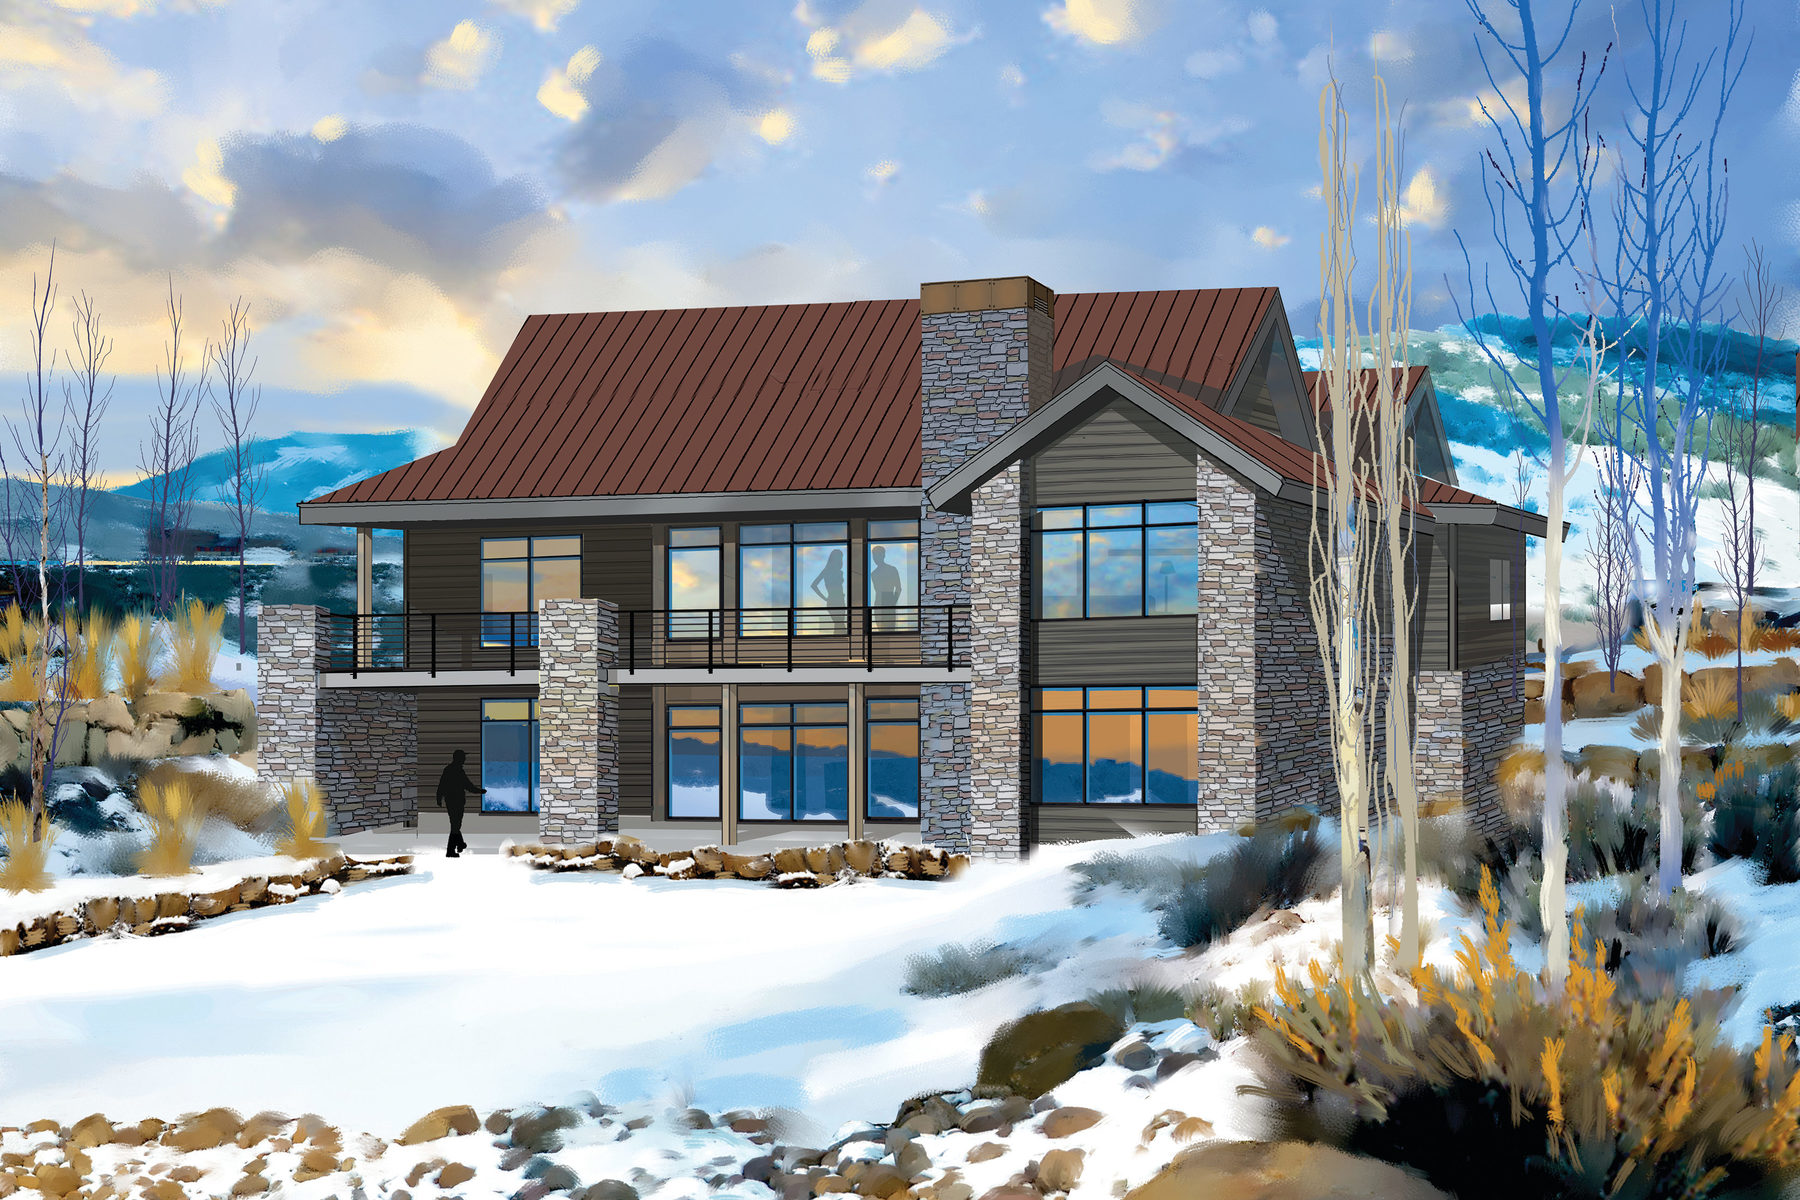 Single Family Home for Sale at New Nicklaus Golf Cabin Promontory 6533 Golden Bear Loop West Park City, Utah, 84098 United States